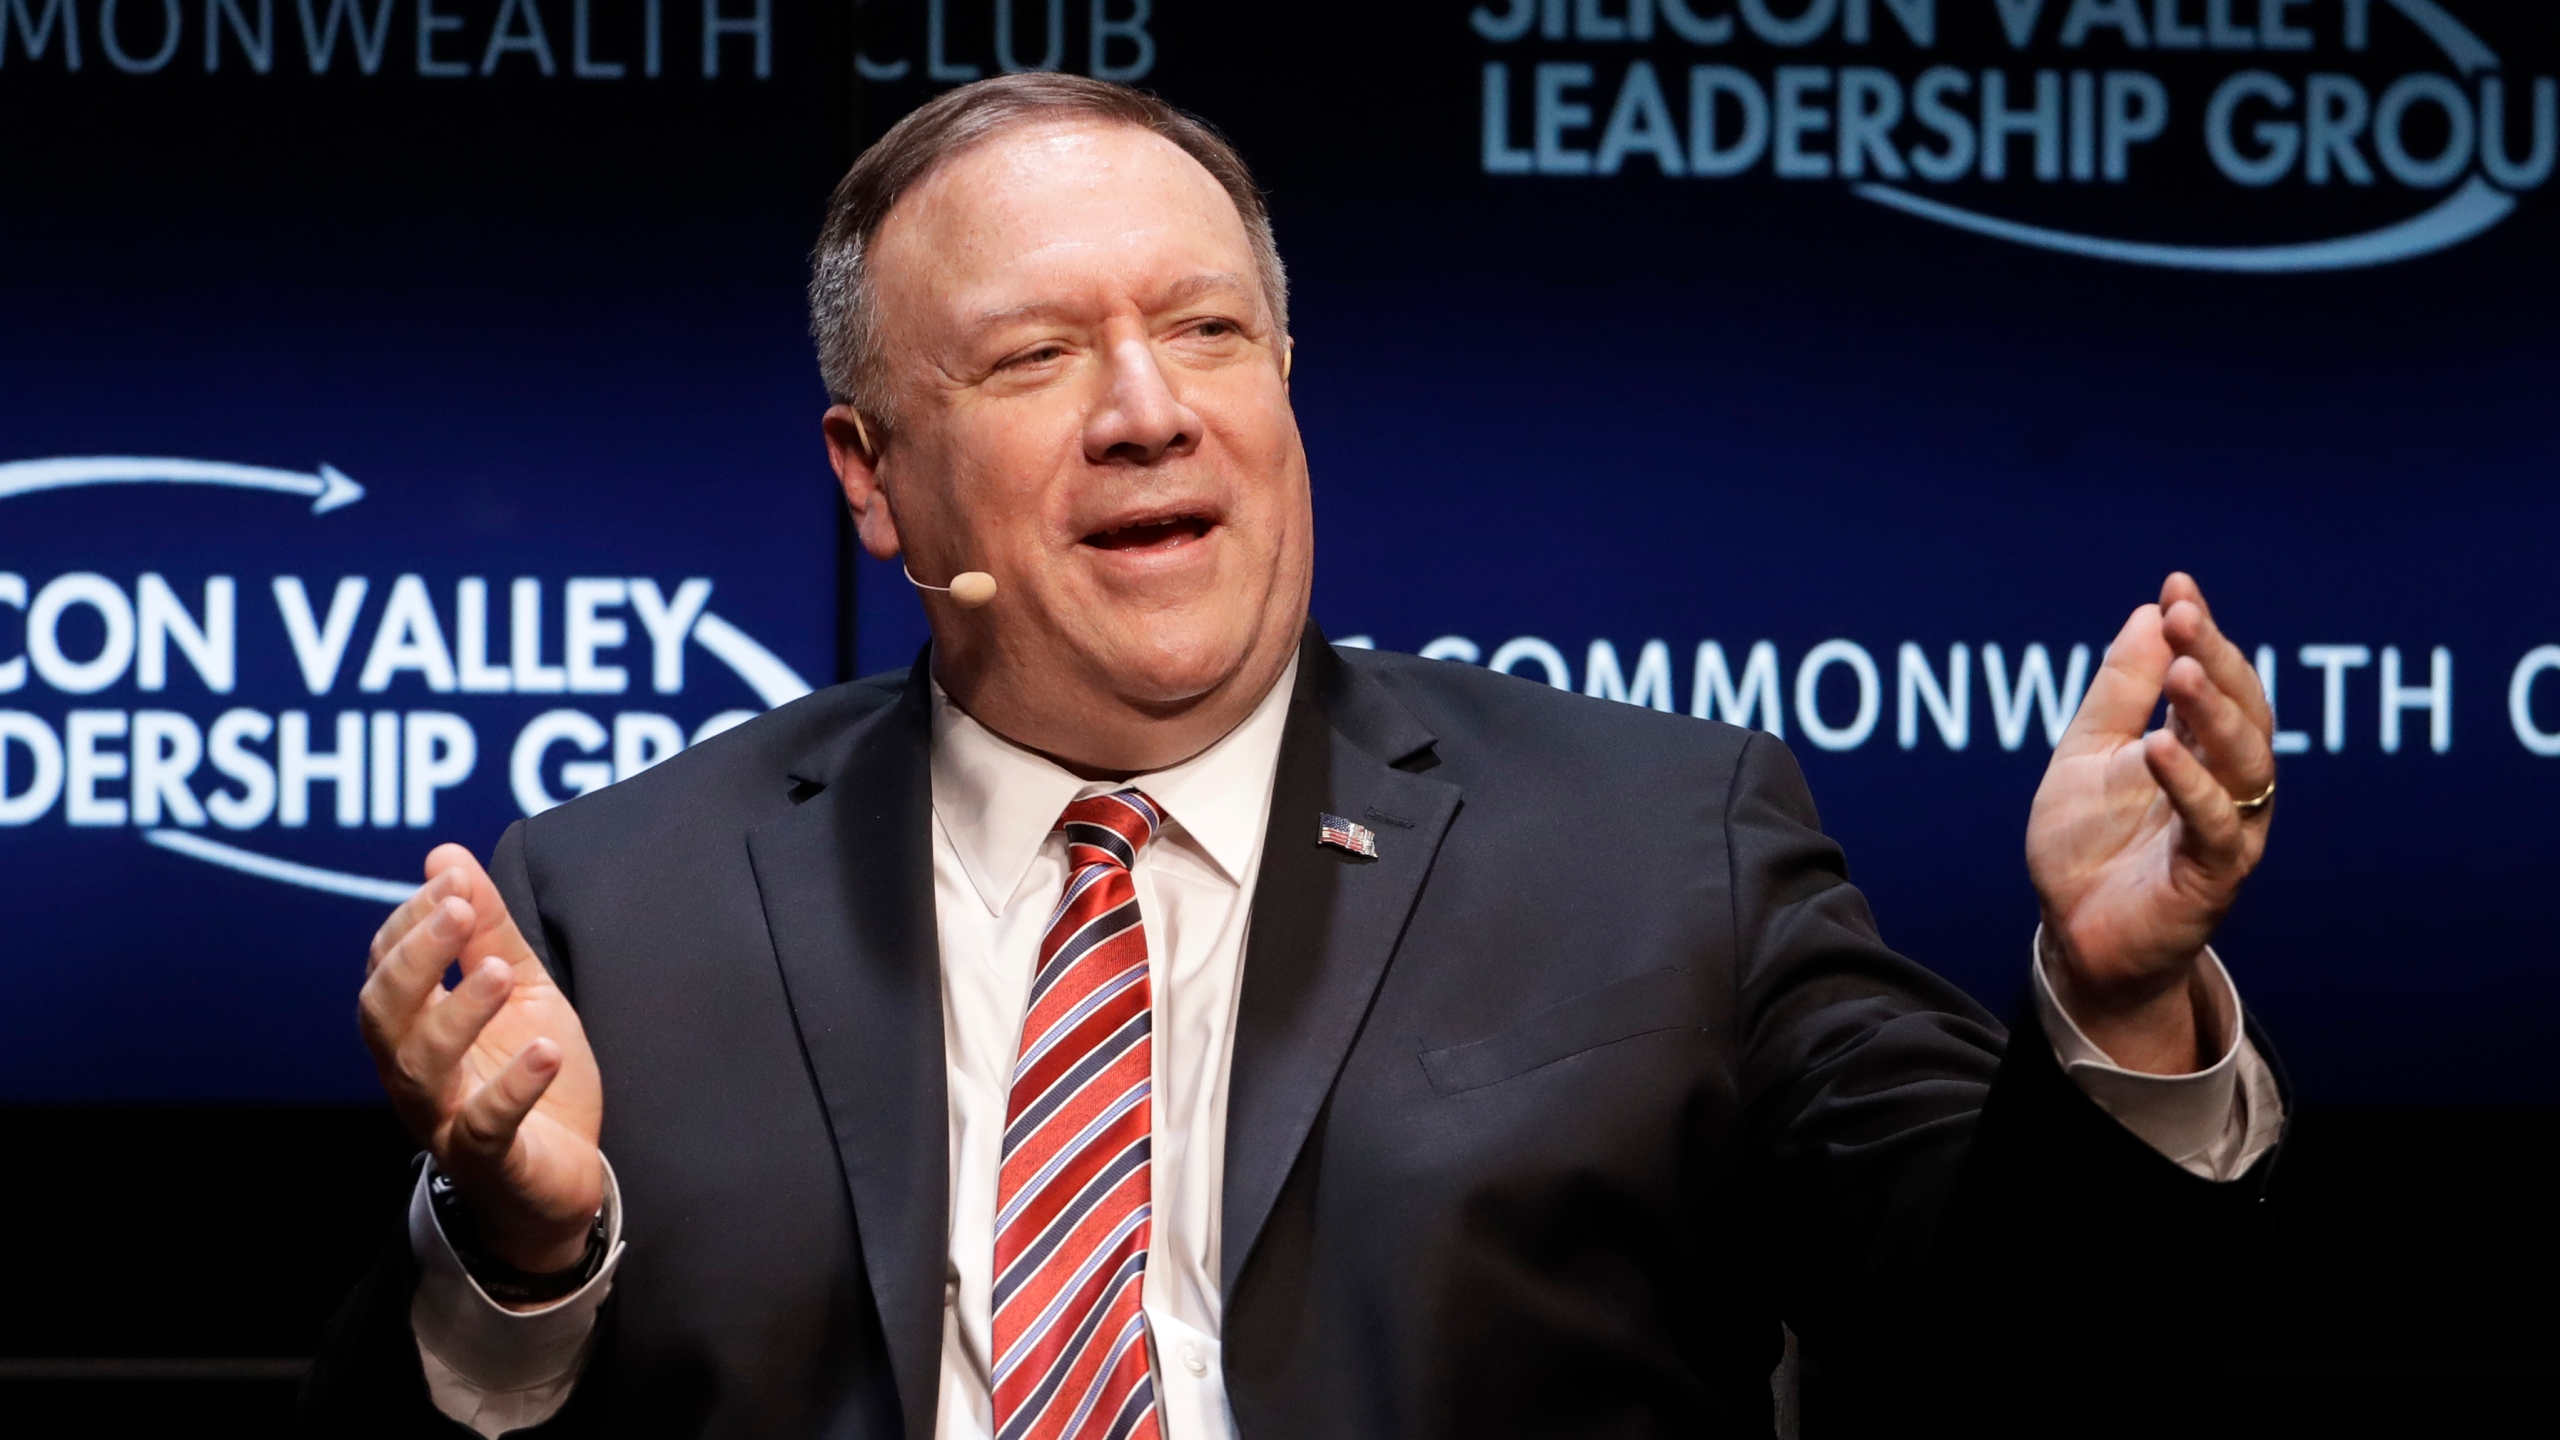 Mike Pompeo